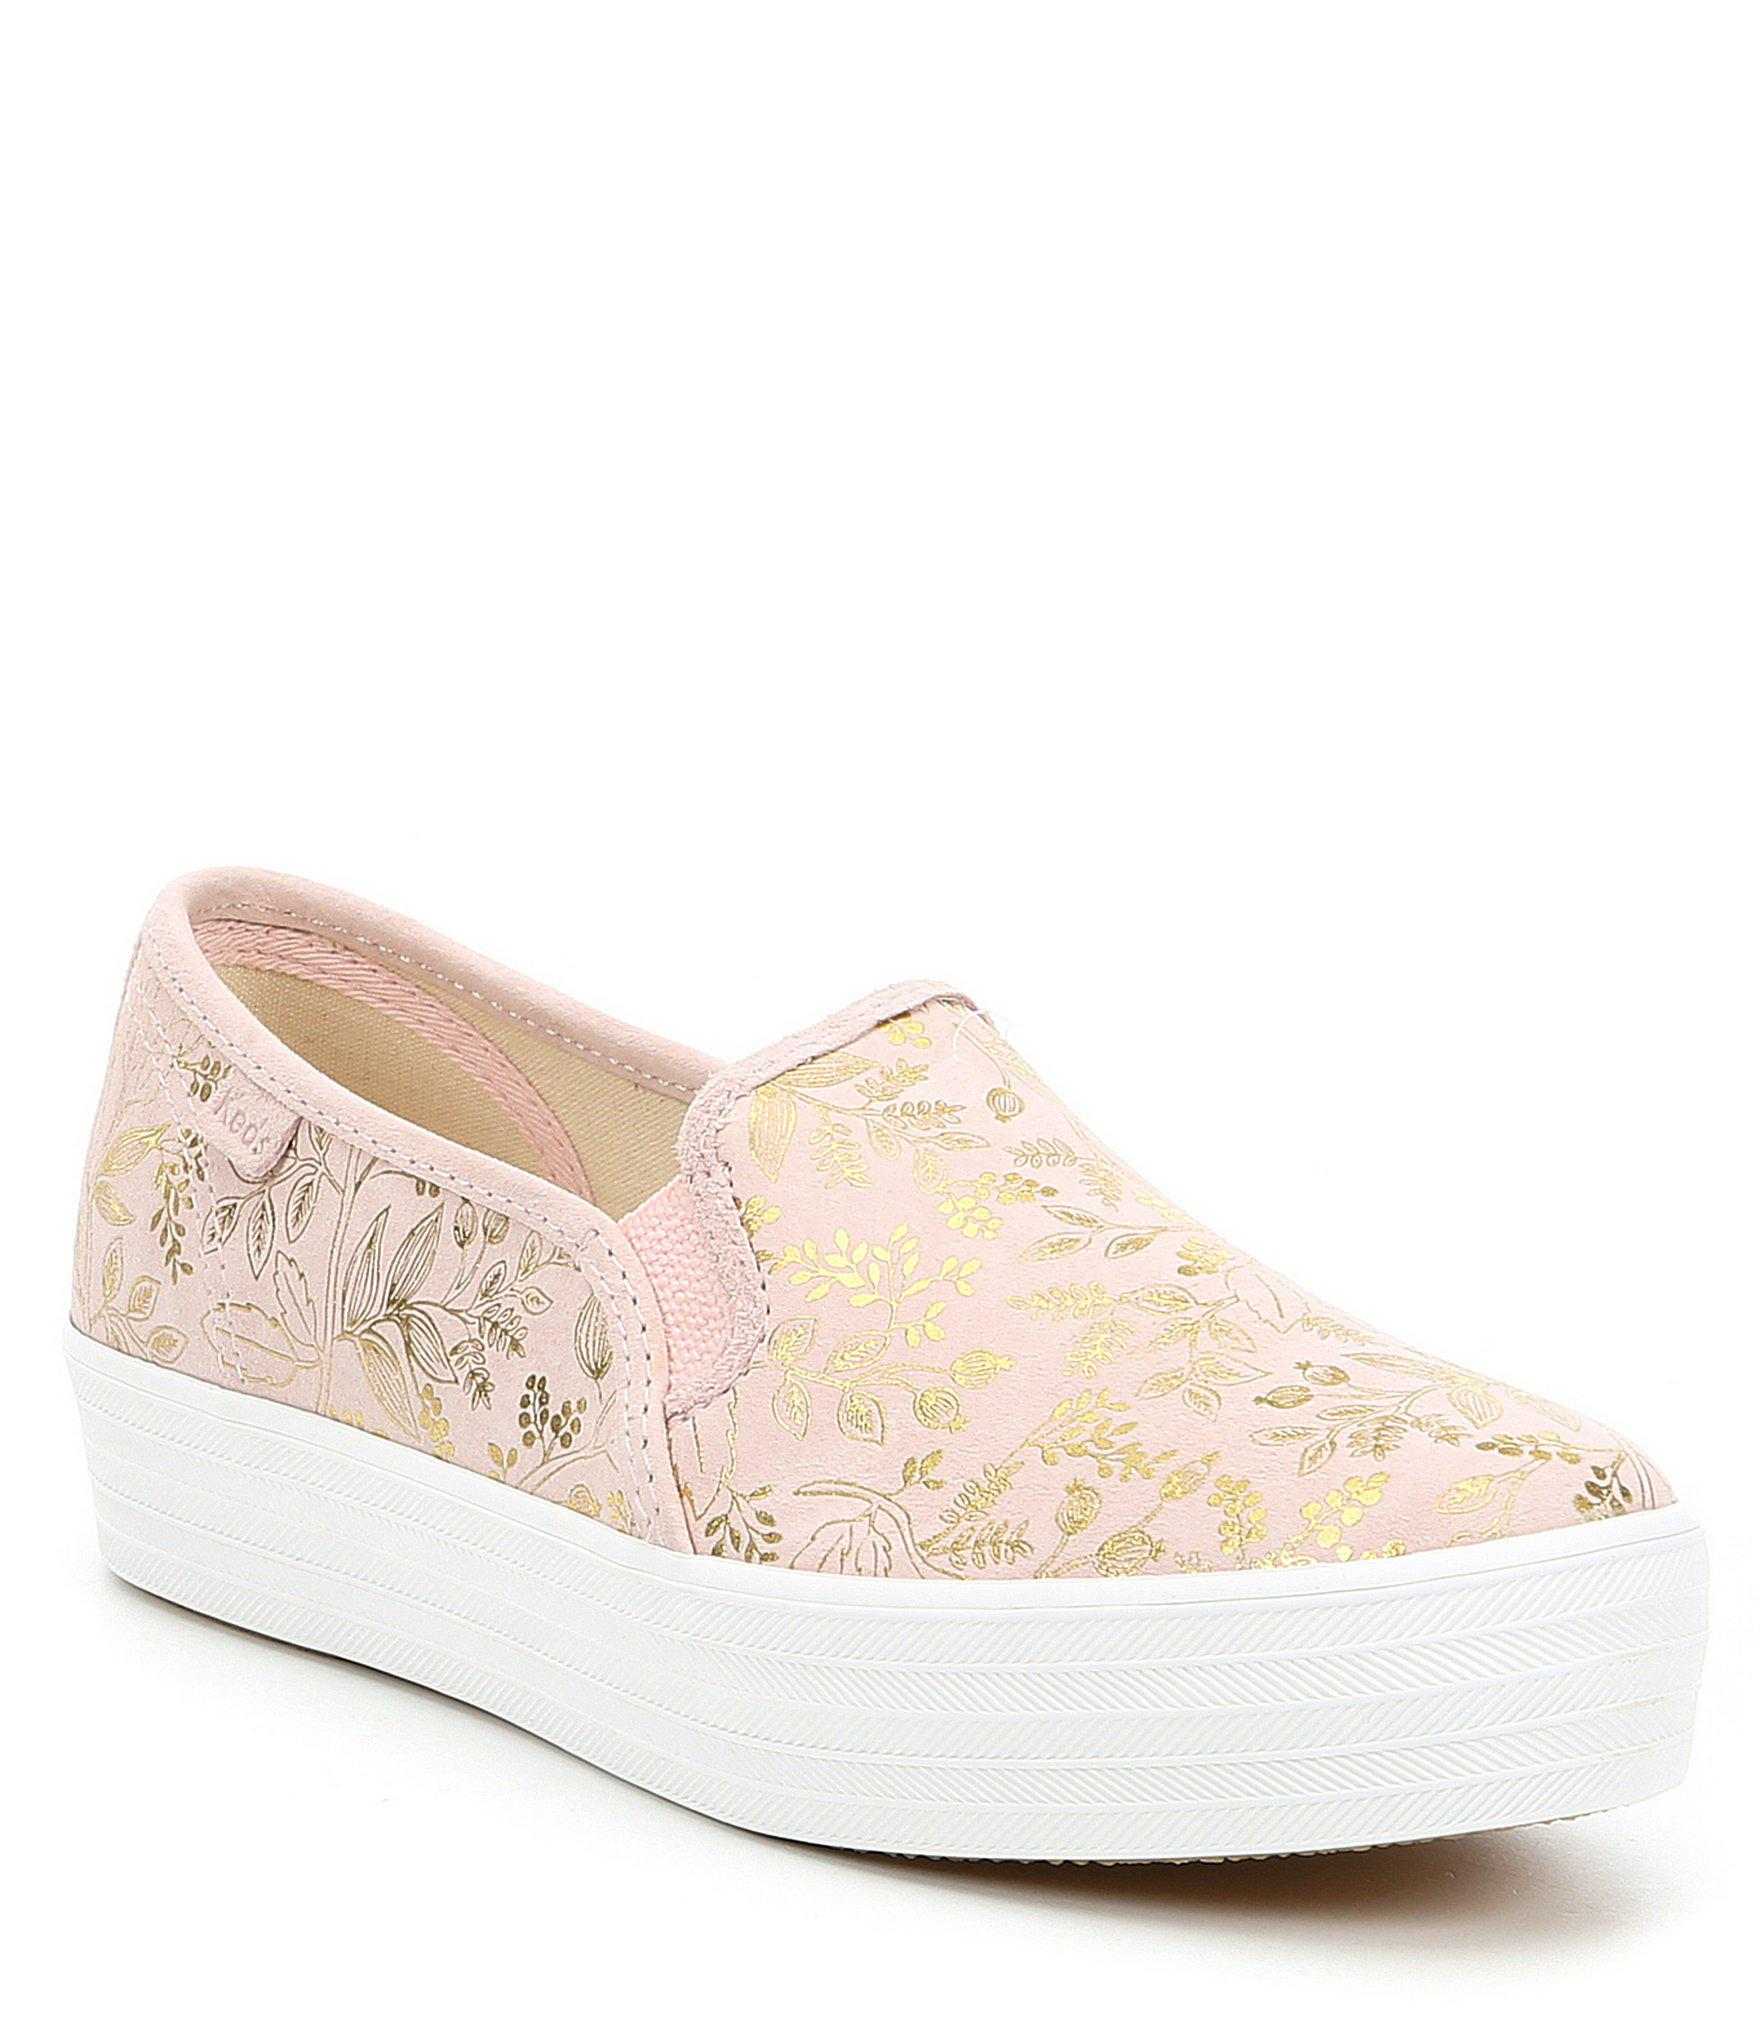 9080fa6284 Lyst - Keds X Rifle Paper Co. Triple Decker Forest Sneakers in Pink